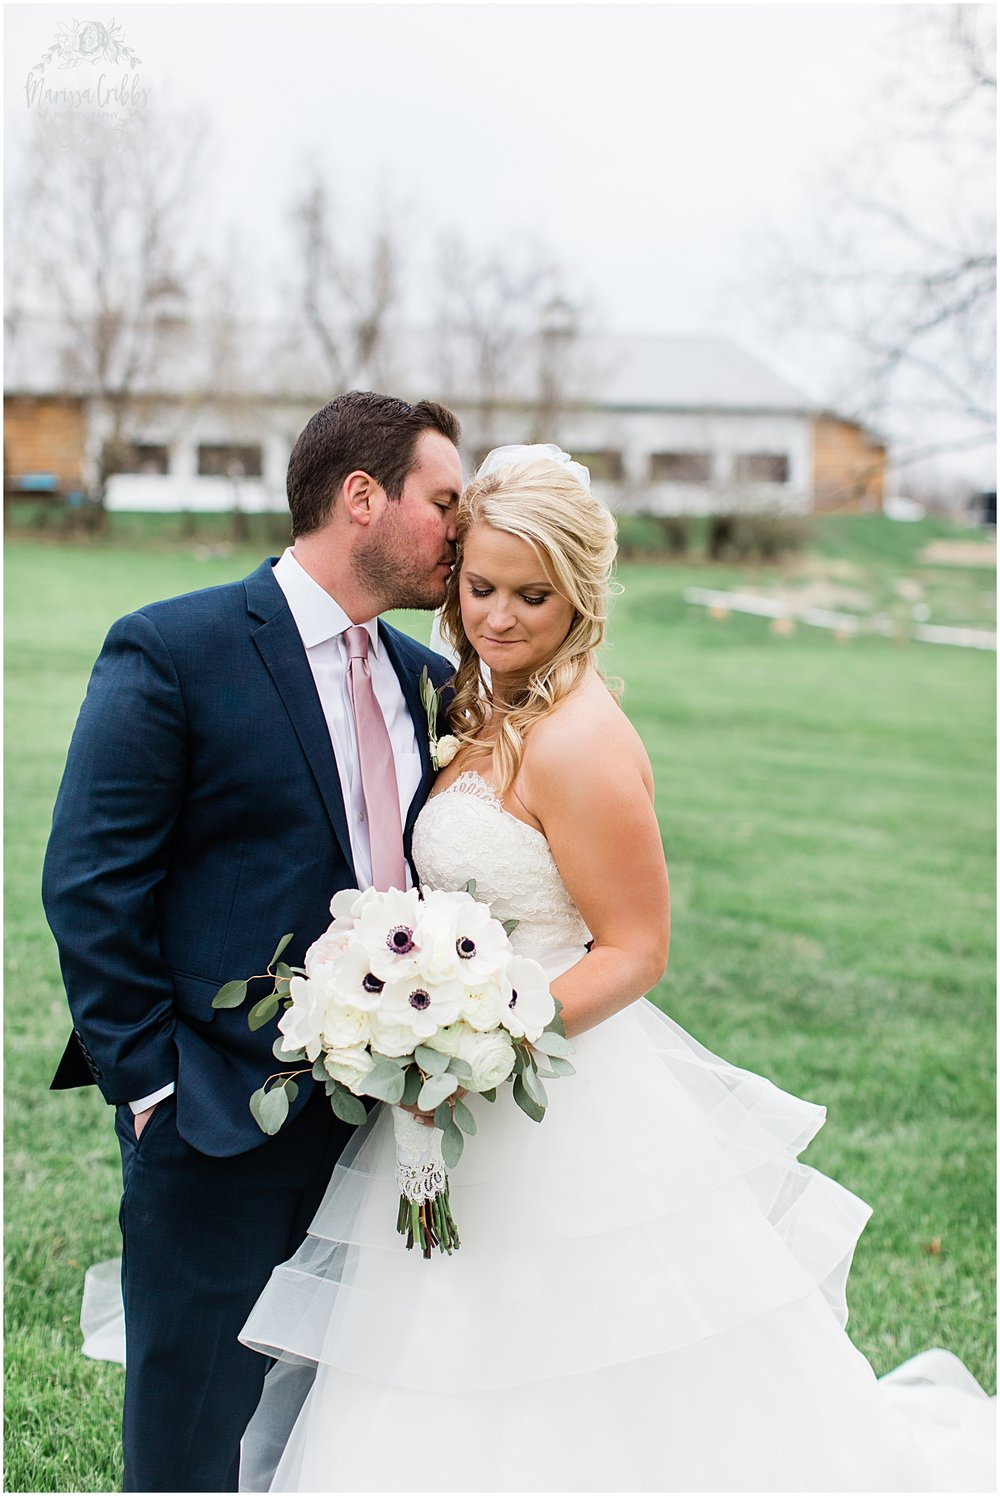 TILSON WEDDING | THE LEGACY AT GREEN HILLS | SIMPLE ELEGANCE | MARISSA CRIBBS PHOTOGRAPHY_4730.jpg